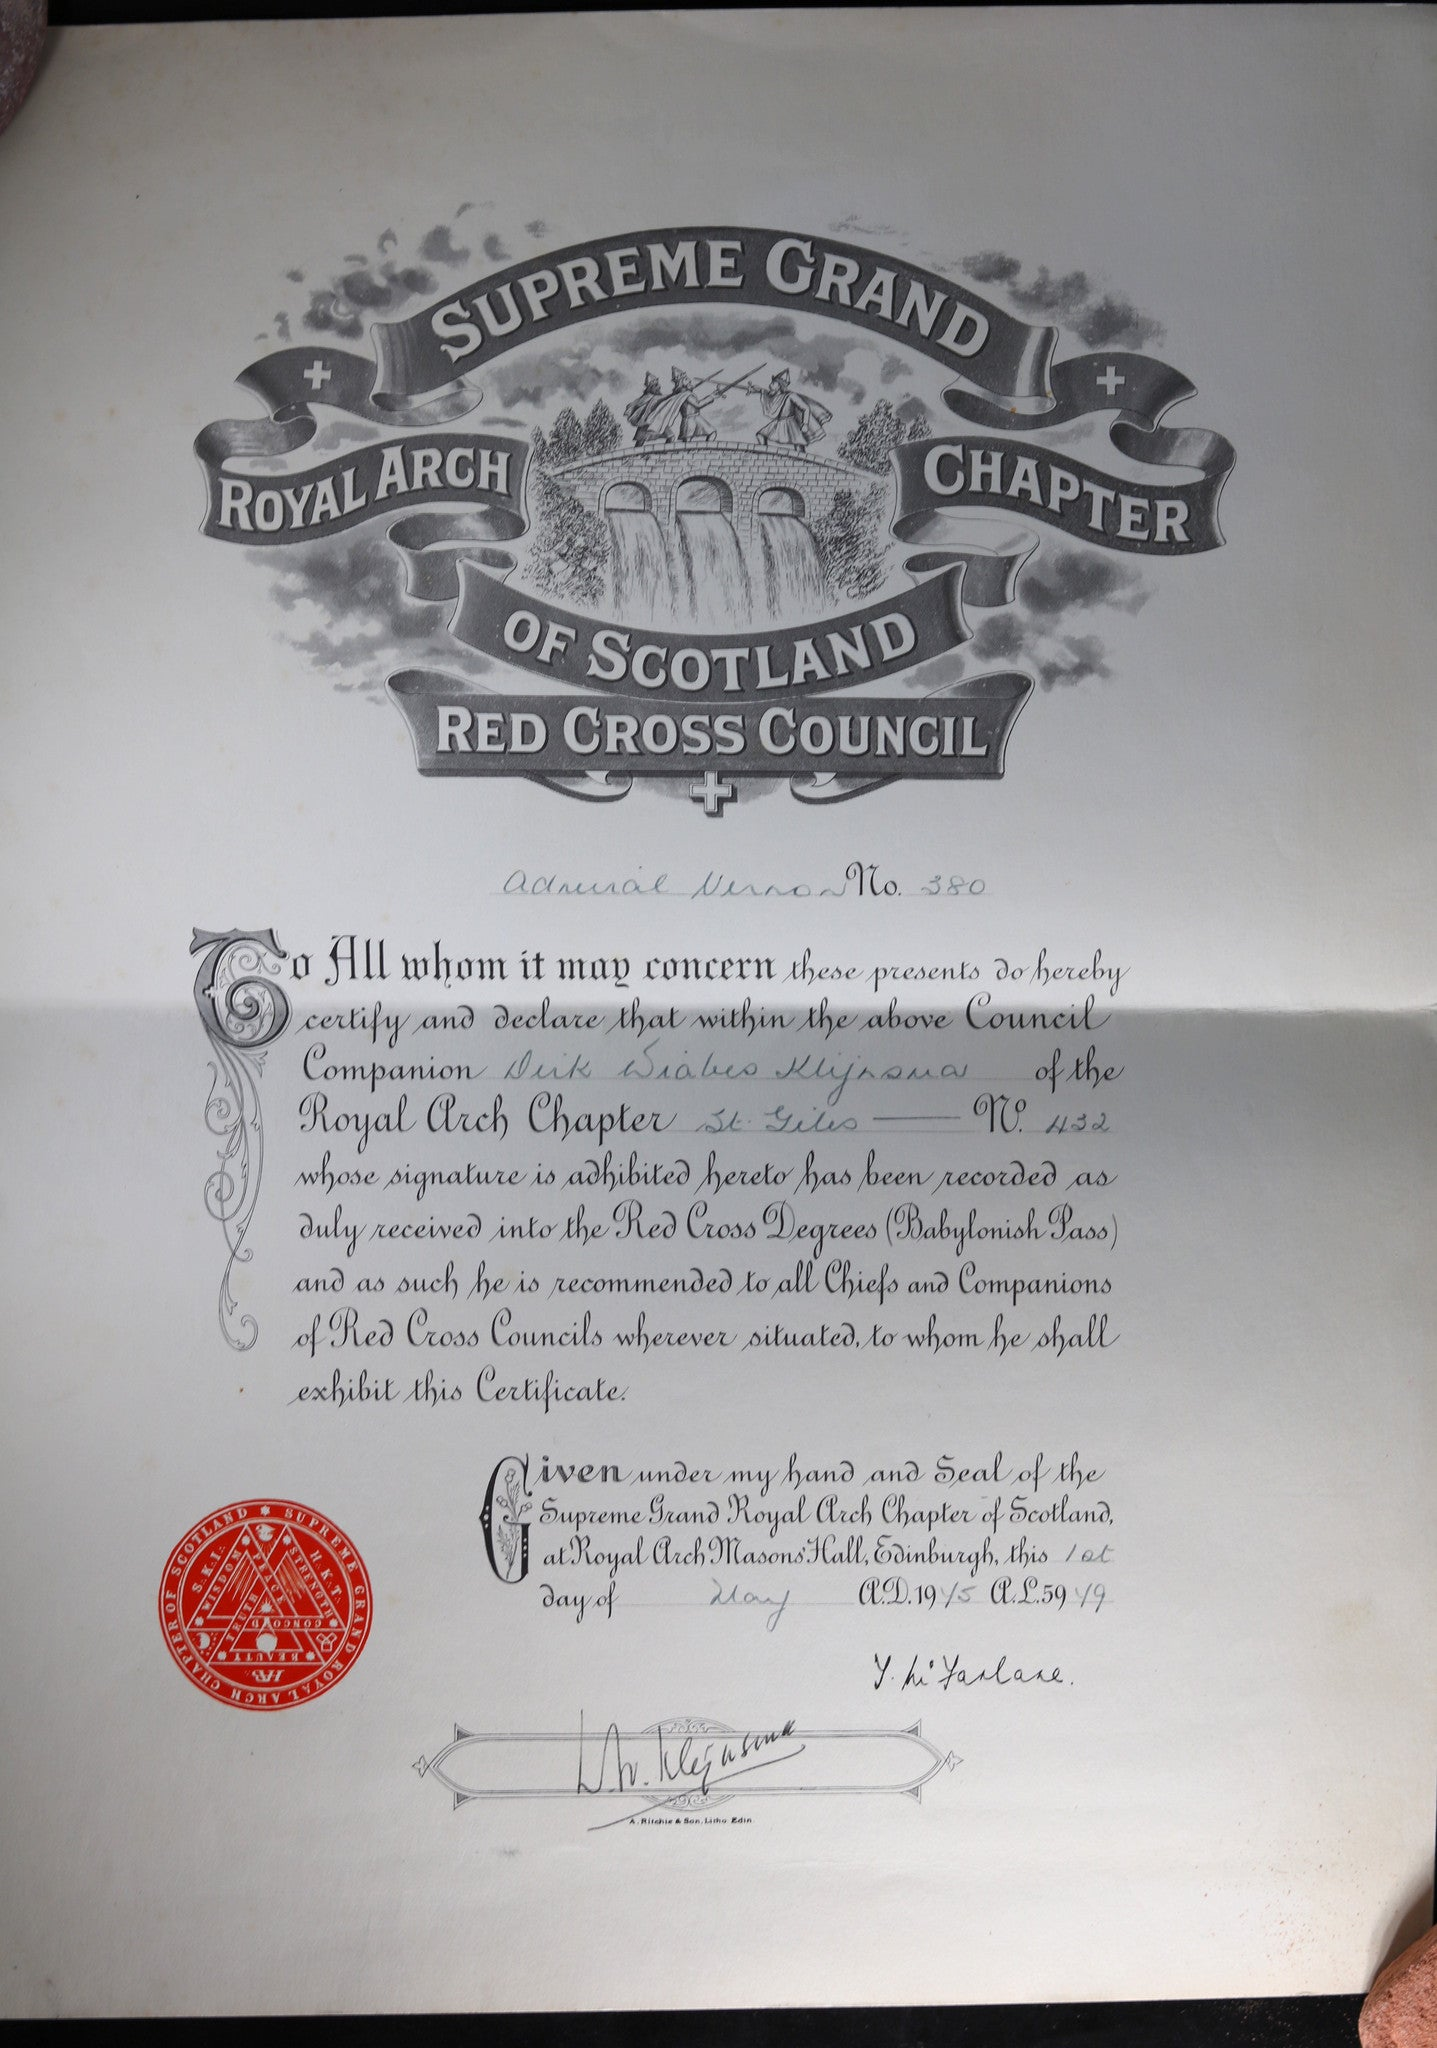 1945 Freemason Supreme Grand Royal Arch Chapter of Scotland